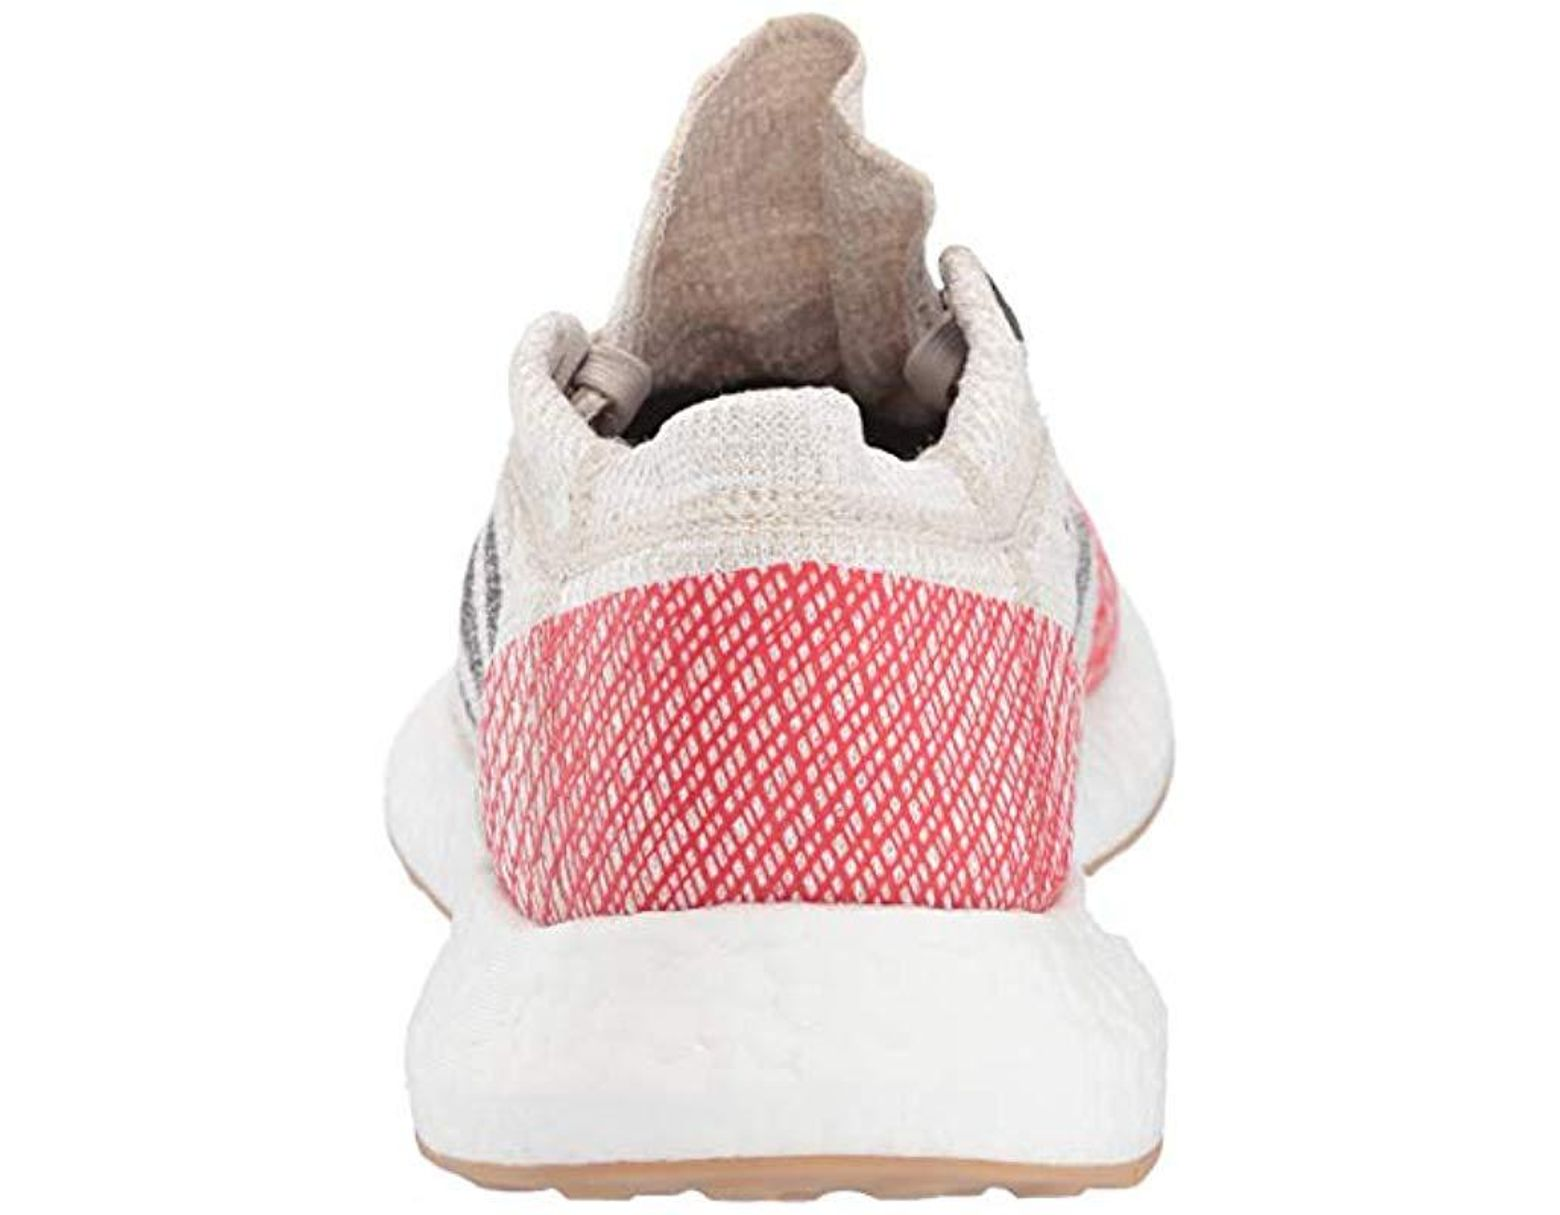 ba0e2ef02 adidas Pureboost Go, Clear Brown/carbon/active Red, 6.5 M Us in Brown for  Men - Lyst